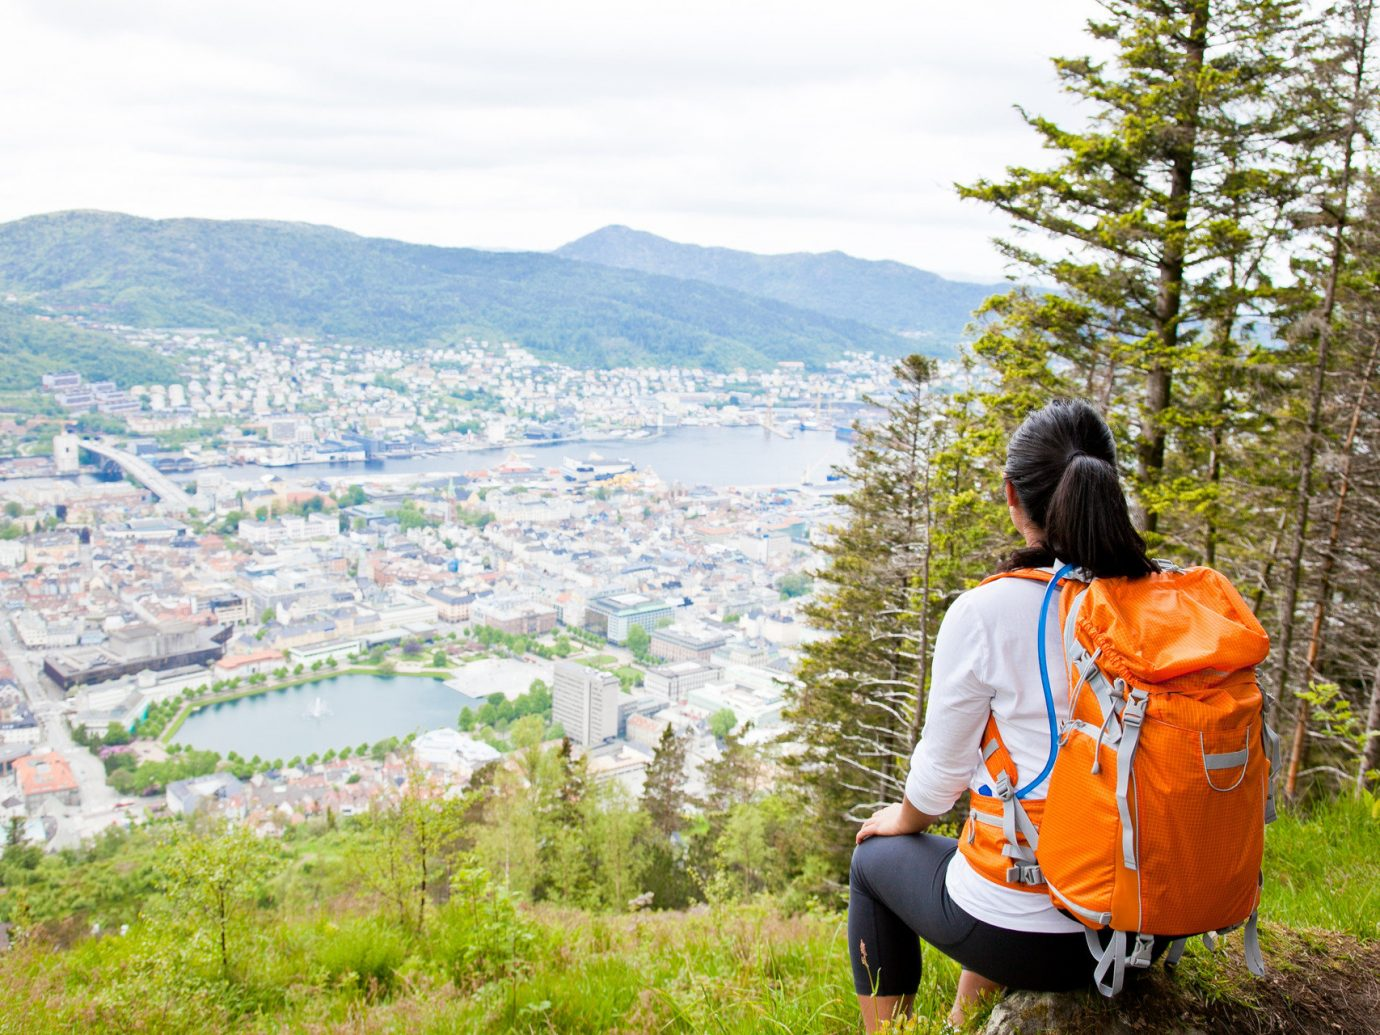 hike hiking Nature Outdoor Activities Outdoors overlook Scenic views tightrope trees Trip Ideas view viewpoint outdoor grass tree person mountain walking tourism orange Adventure backpacking highland